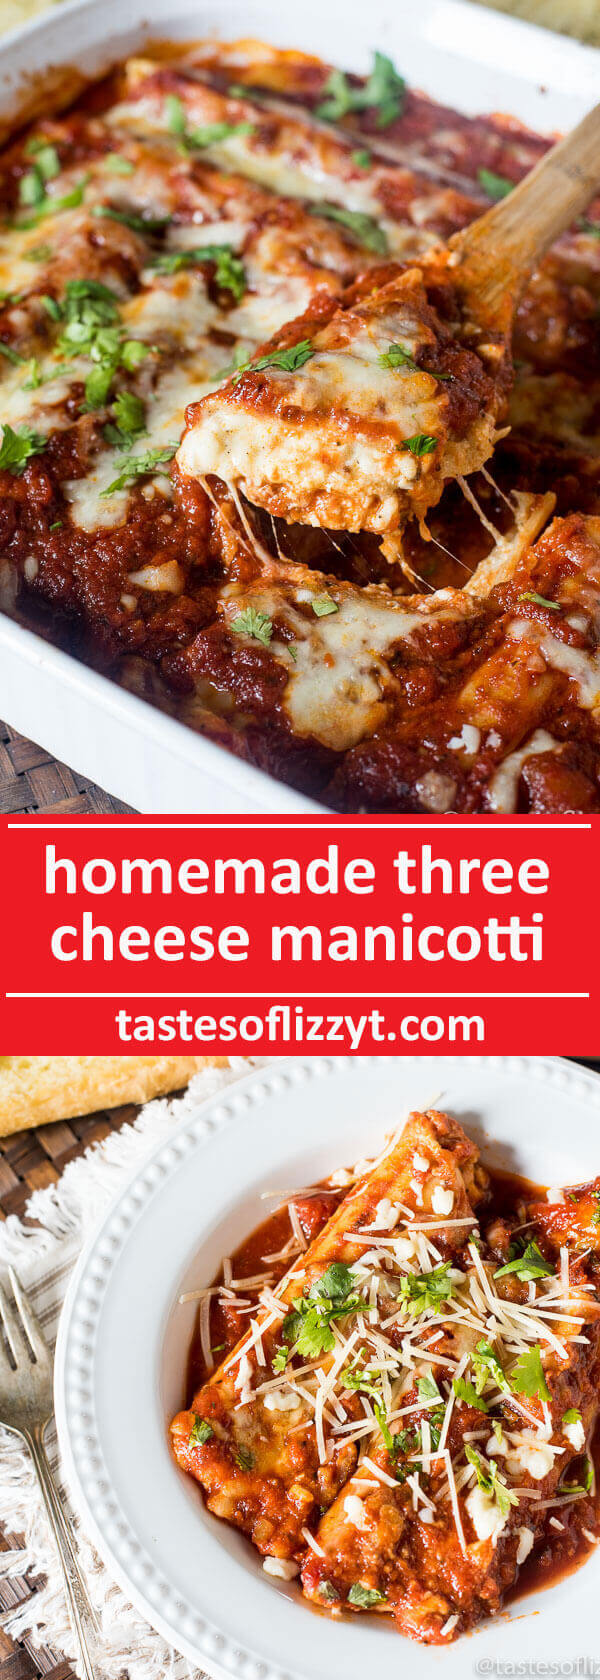 A simple cheese filling and rich, hearty spaghetti sauce make this three cheese manicotti a comforting family dinner. Serve with a side salad and garlic bread. easy italian casserole / vegetarian casserole recipe